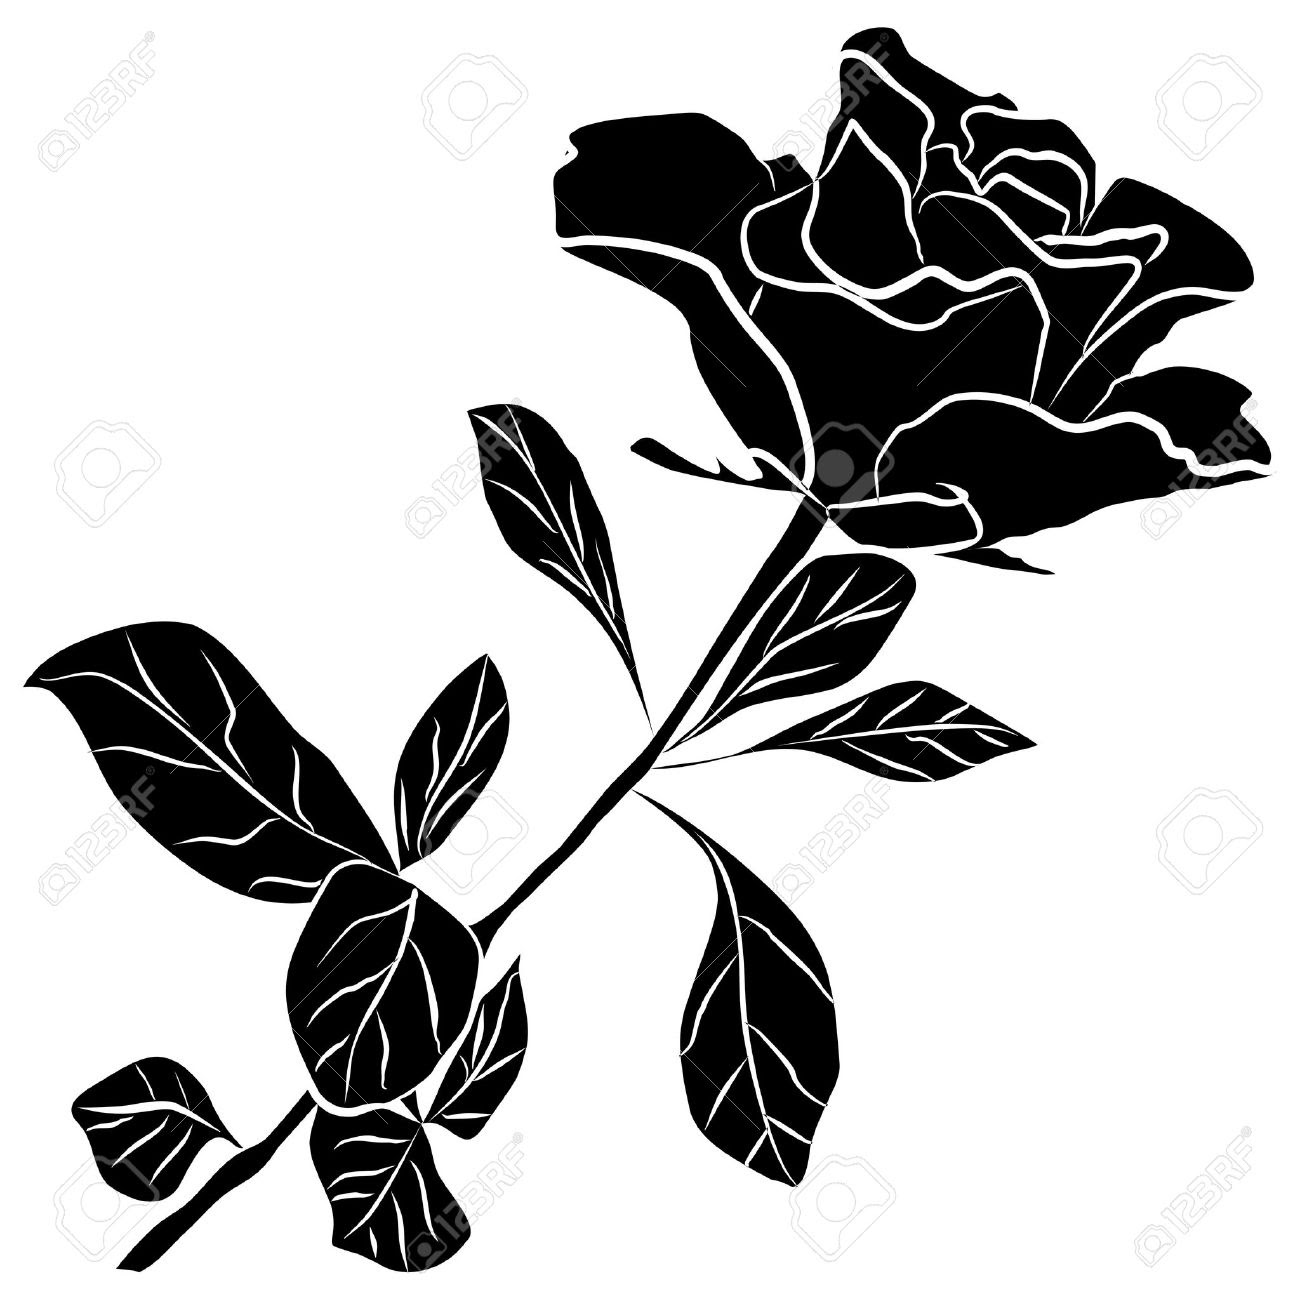 Hoontoidly single black rose clip art images - Rose noir dessin ...